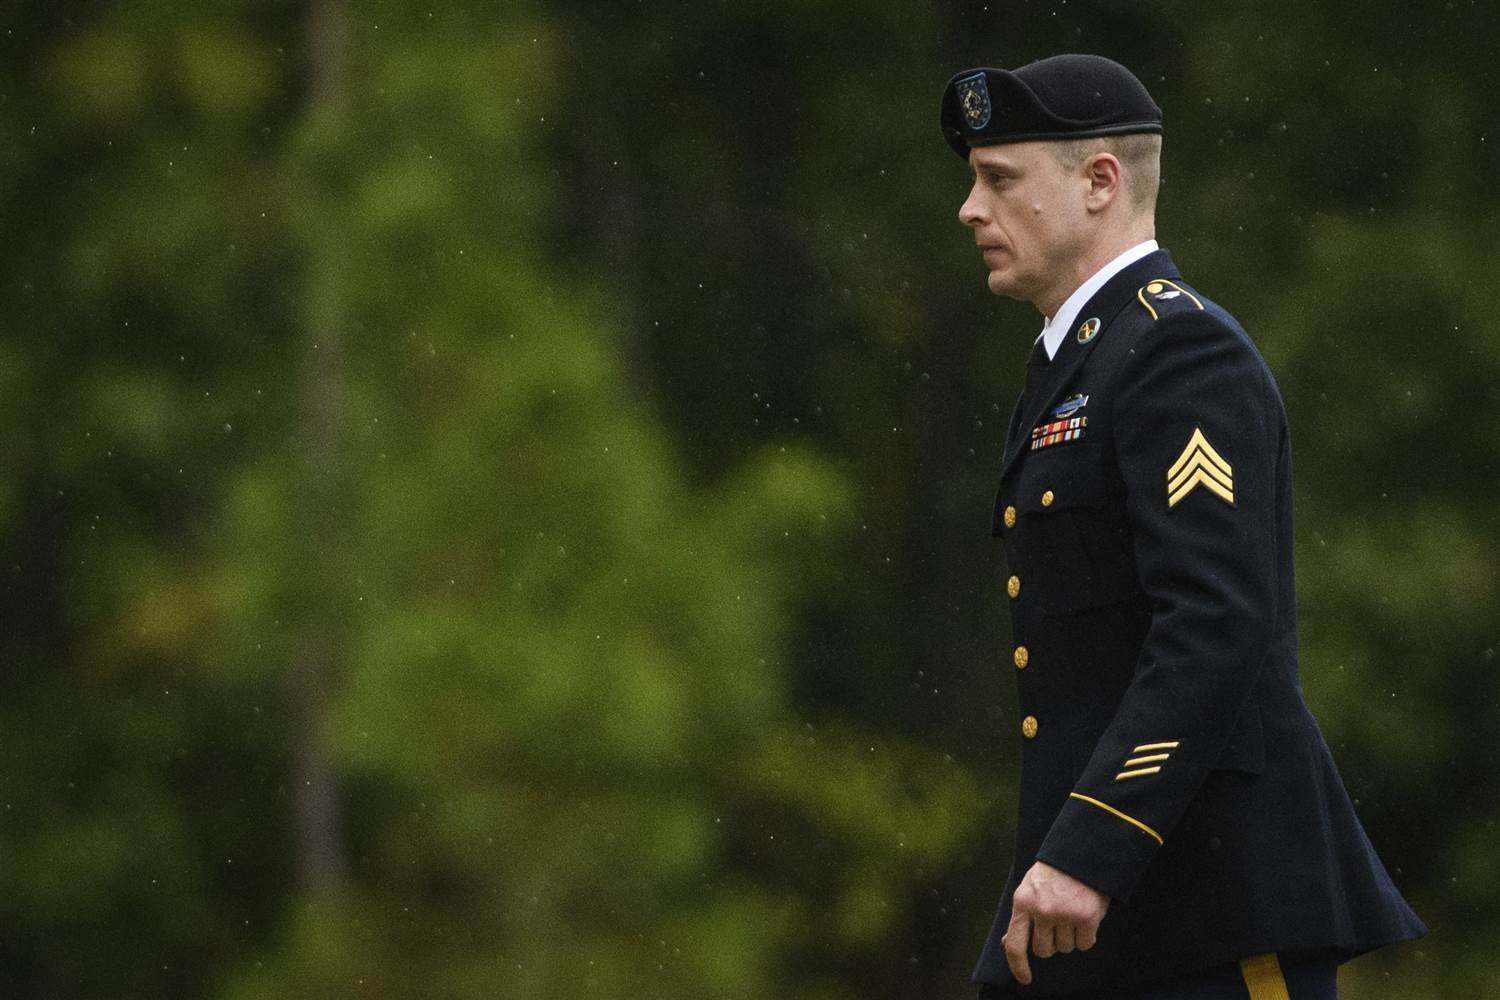 Lives altered forever by wounds on Bergdahl searches